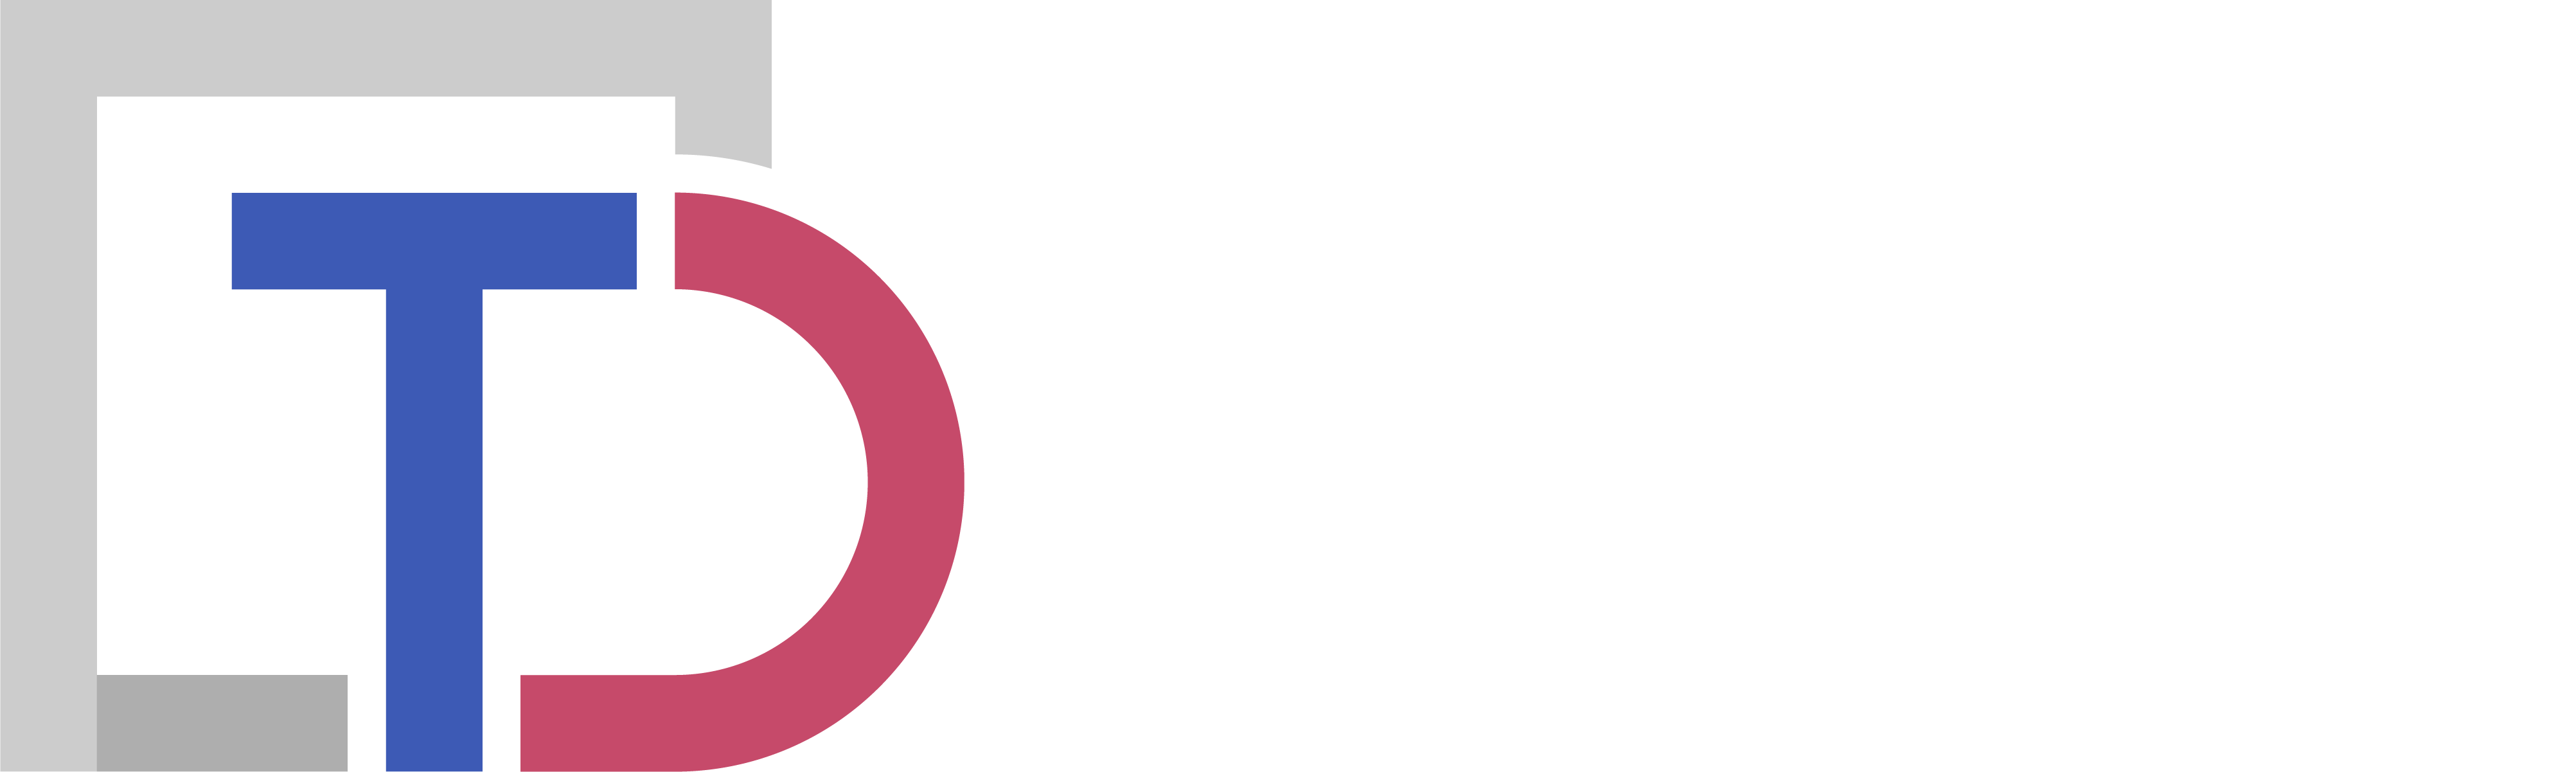 TD Tax and Accounting Services